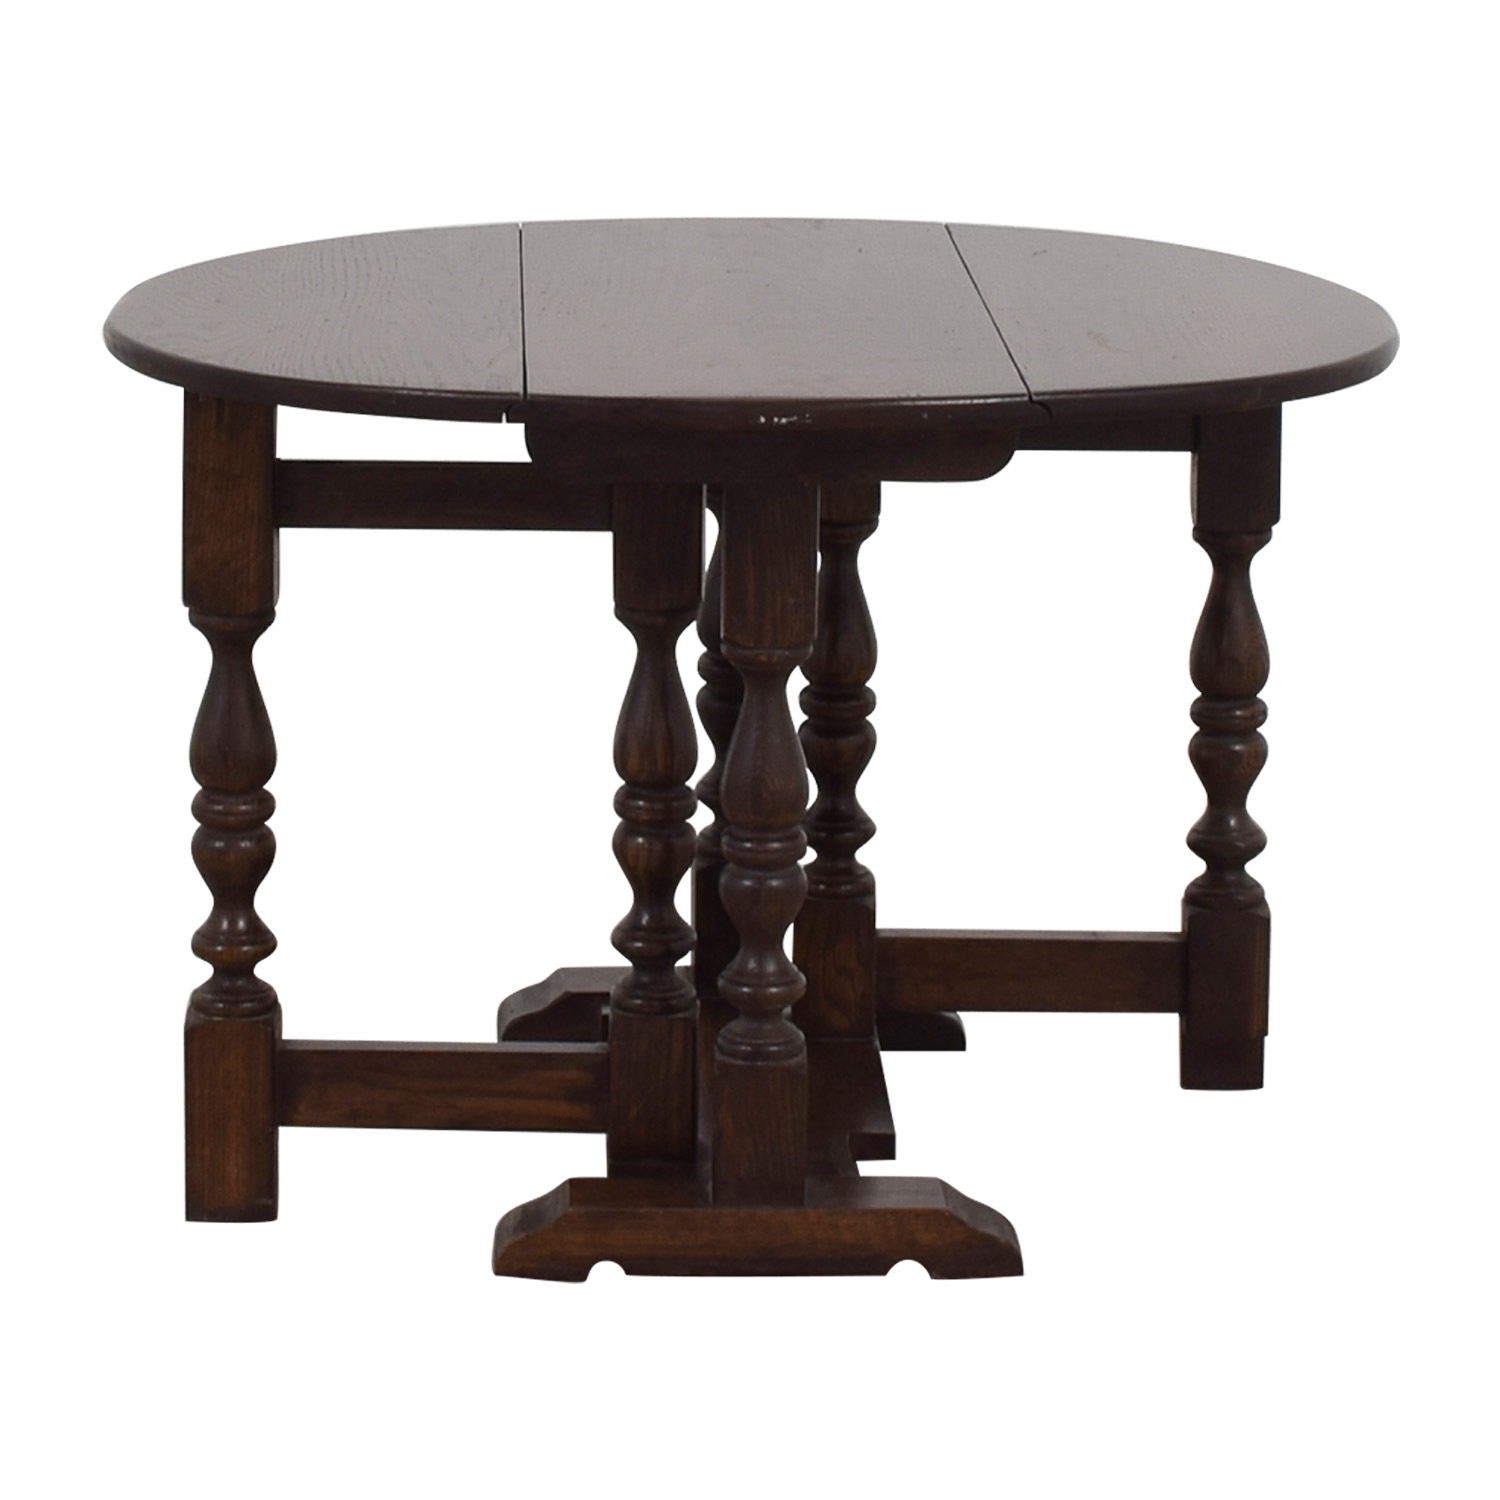 Antique Wood Side Table With Collapsible Leaves BROWN ...